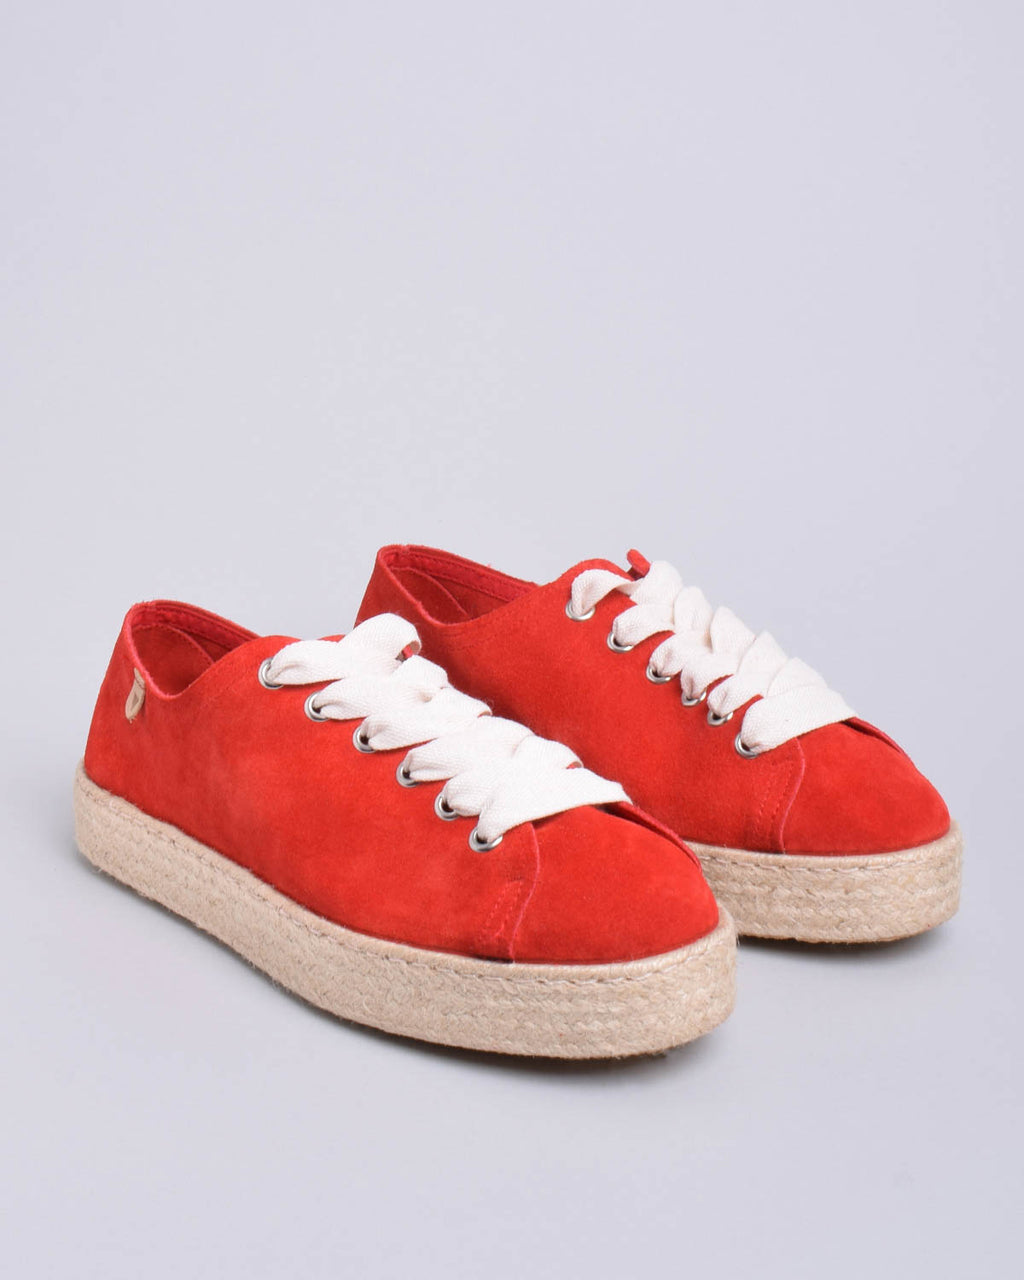 Brigit Suede Jute Wrapped Platform Sneakers - Red - Verbenas USA